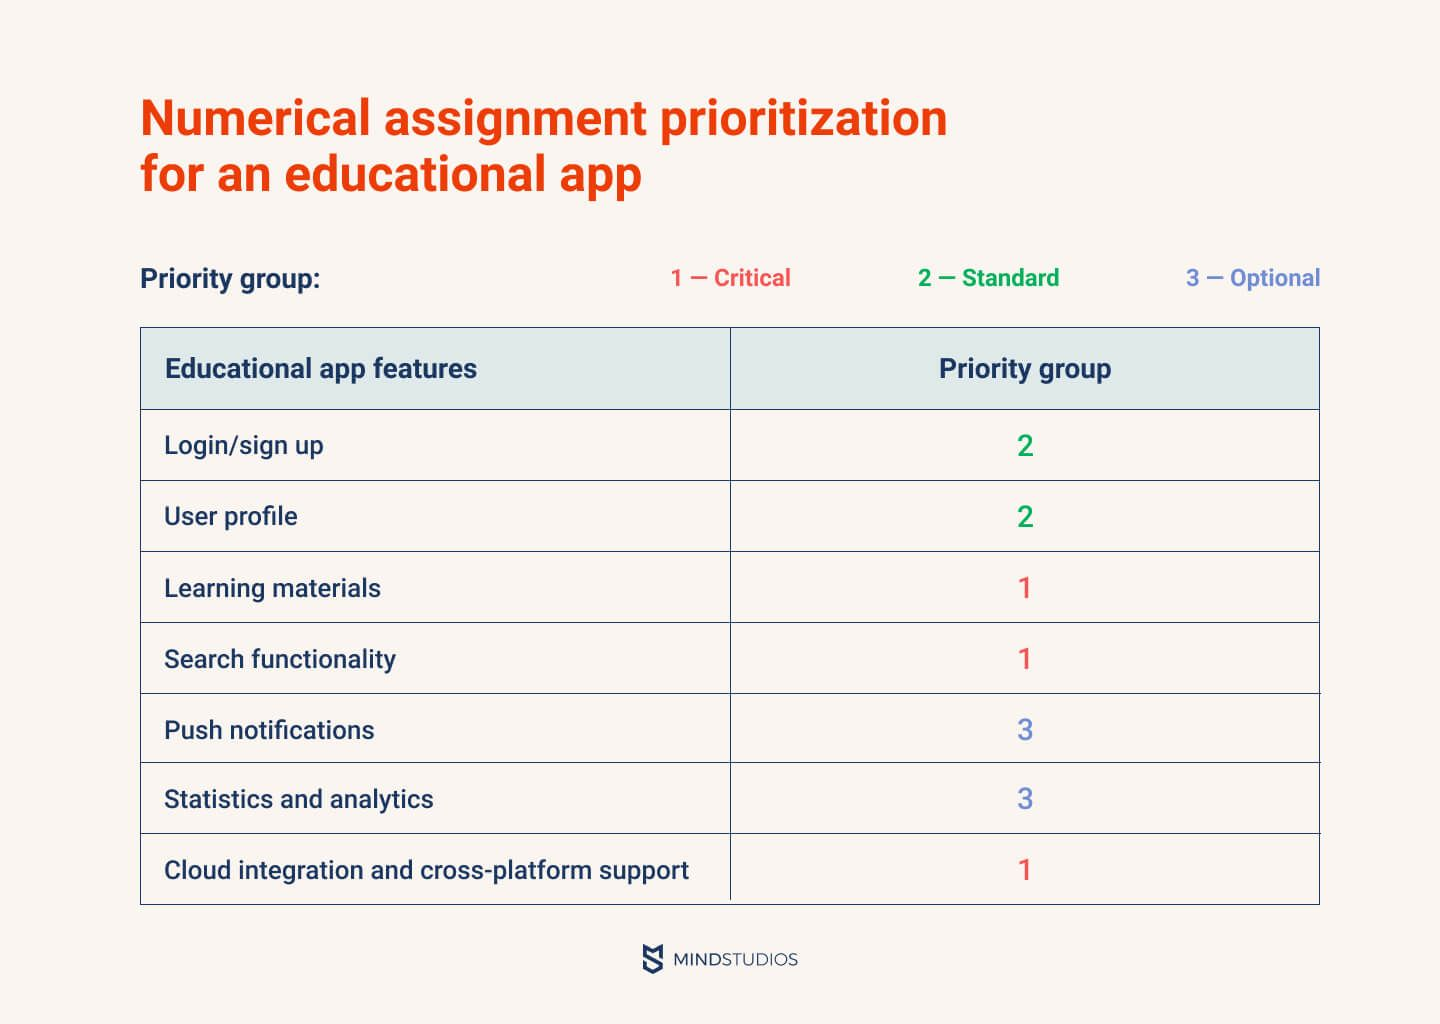 Numerical assignment prioritization for an educational app